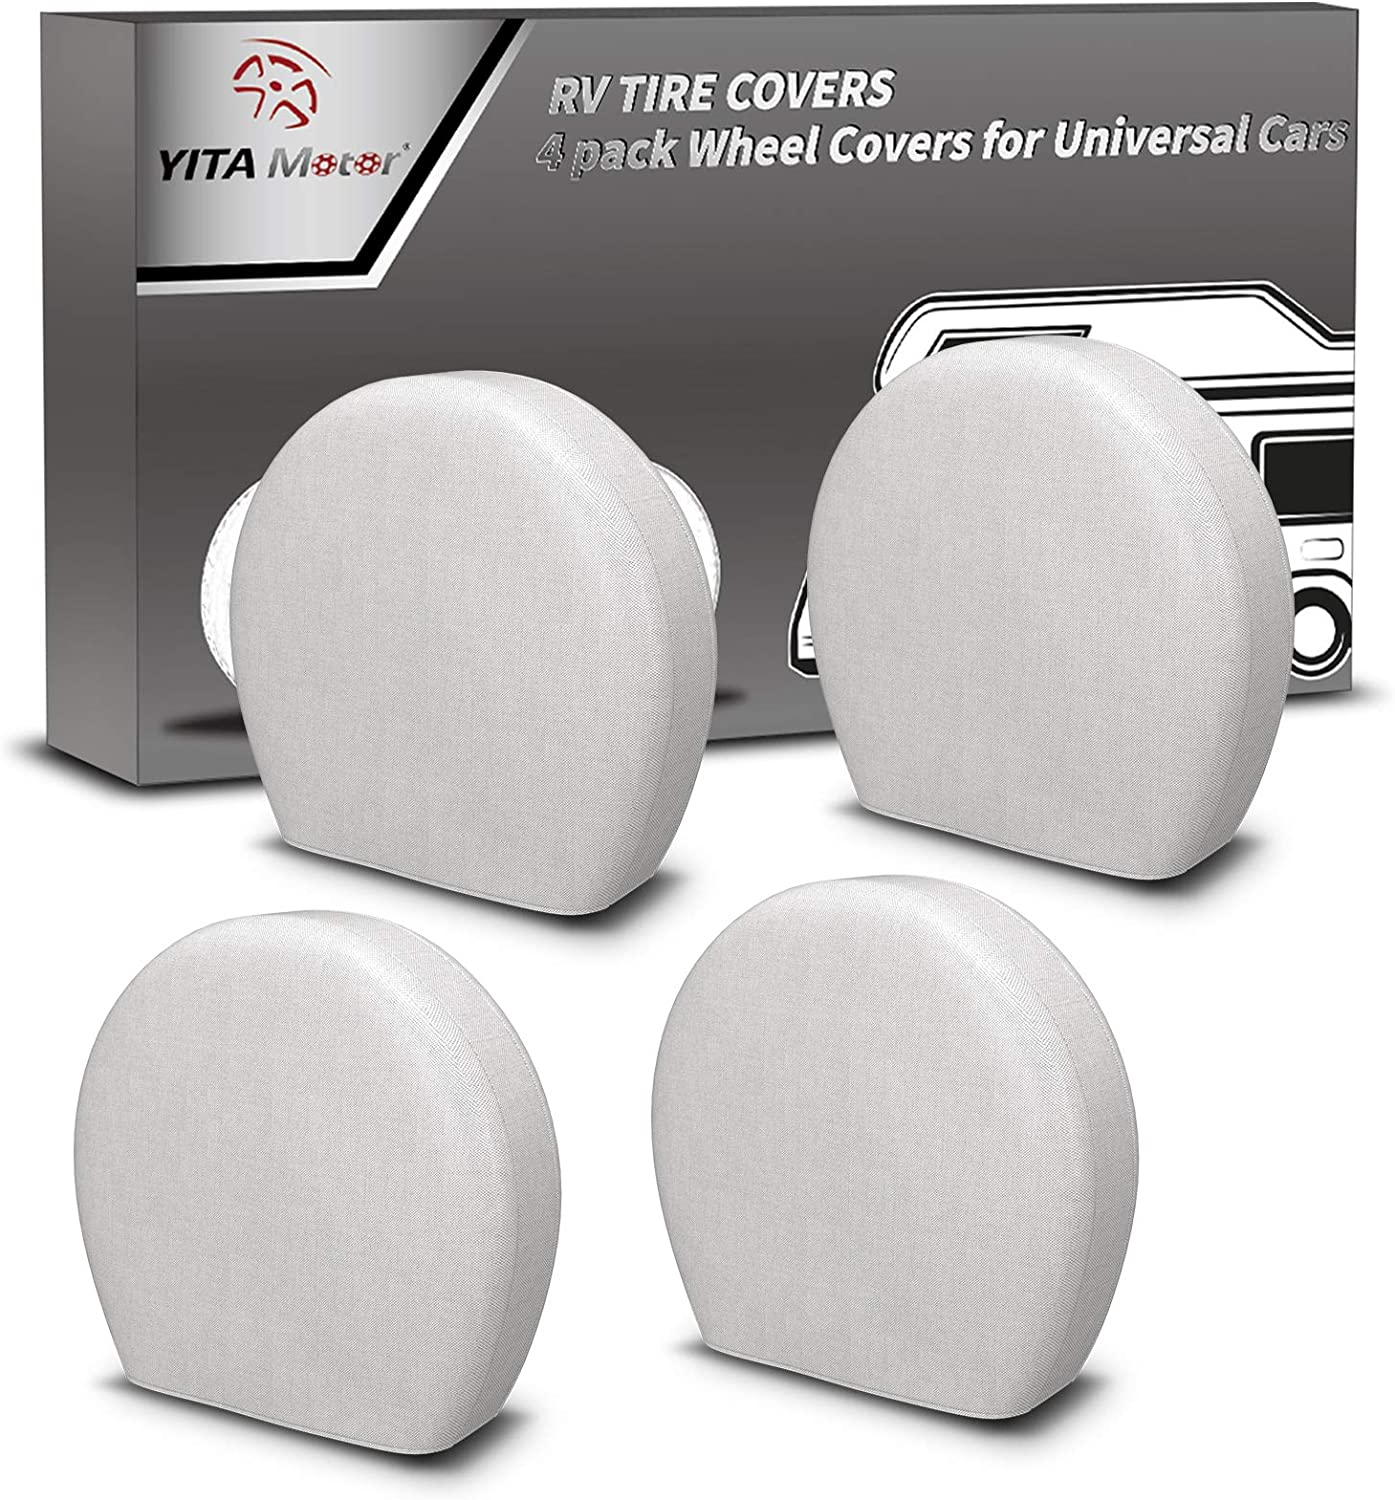 """YITAMOTOR Tire Covers,Set of 4 Premium 600D Oxford Motorhome RV Wheel Covers,100% Waterproof PU Coating Tire Protectors,Universal Tire Covers,Fits 32""""- 34.5"""" Tire Diameters"""